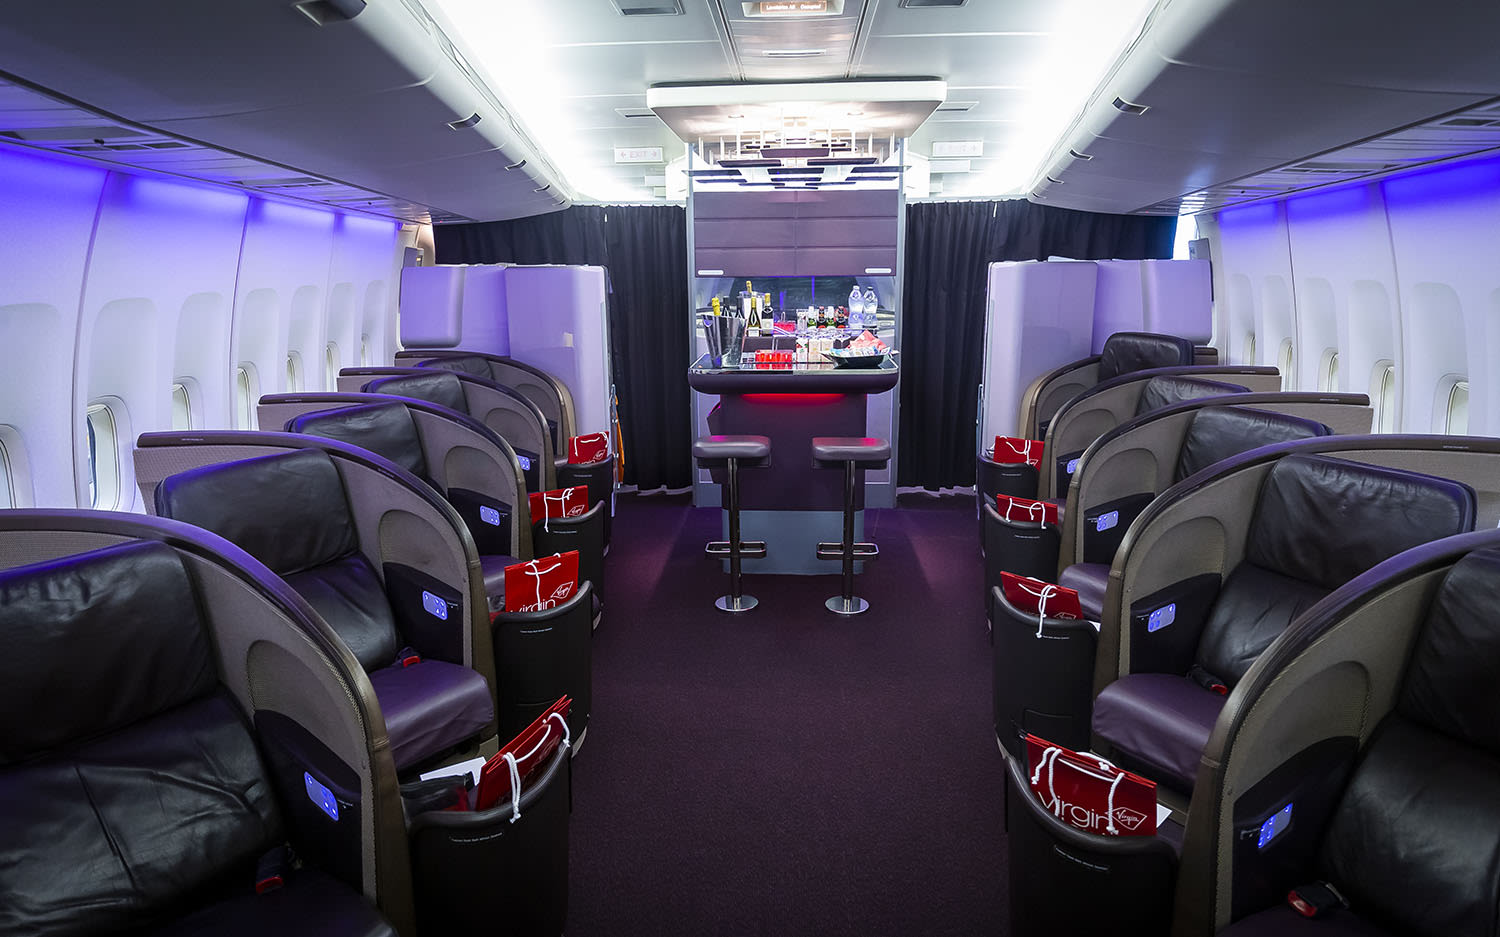 Virgin Atlantic Upper Class on a Boeing 747